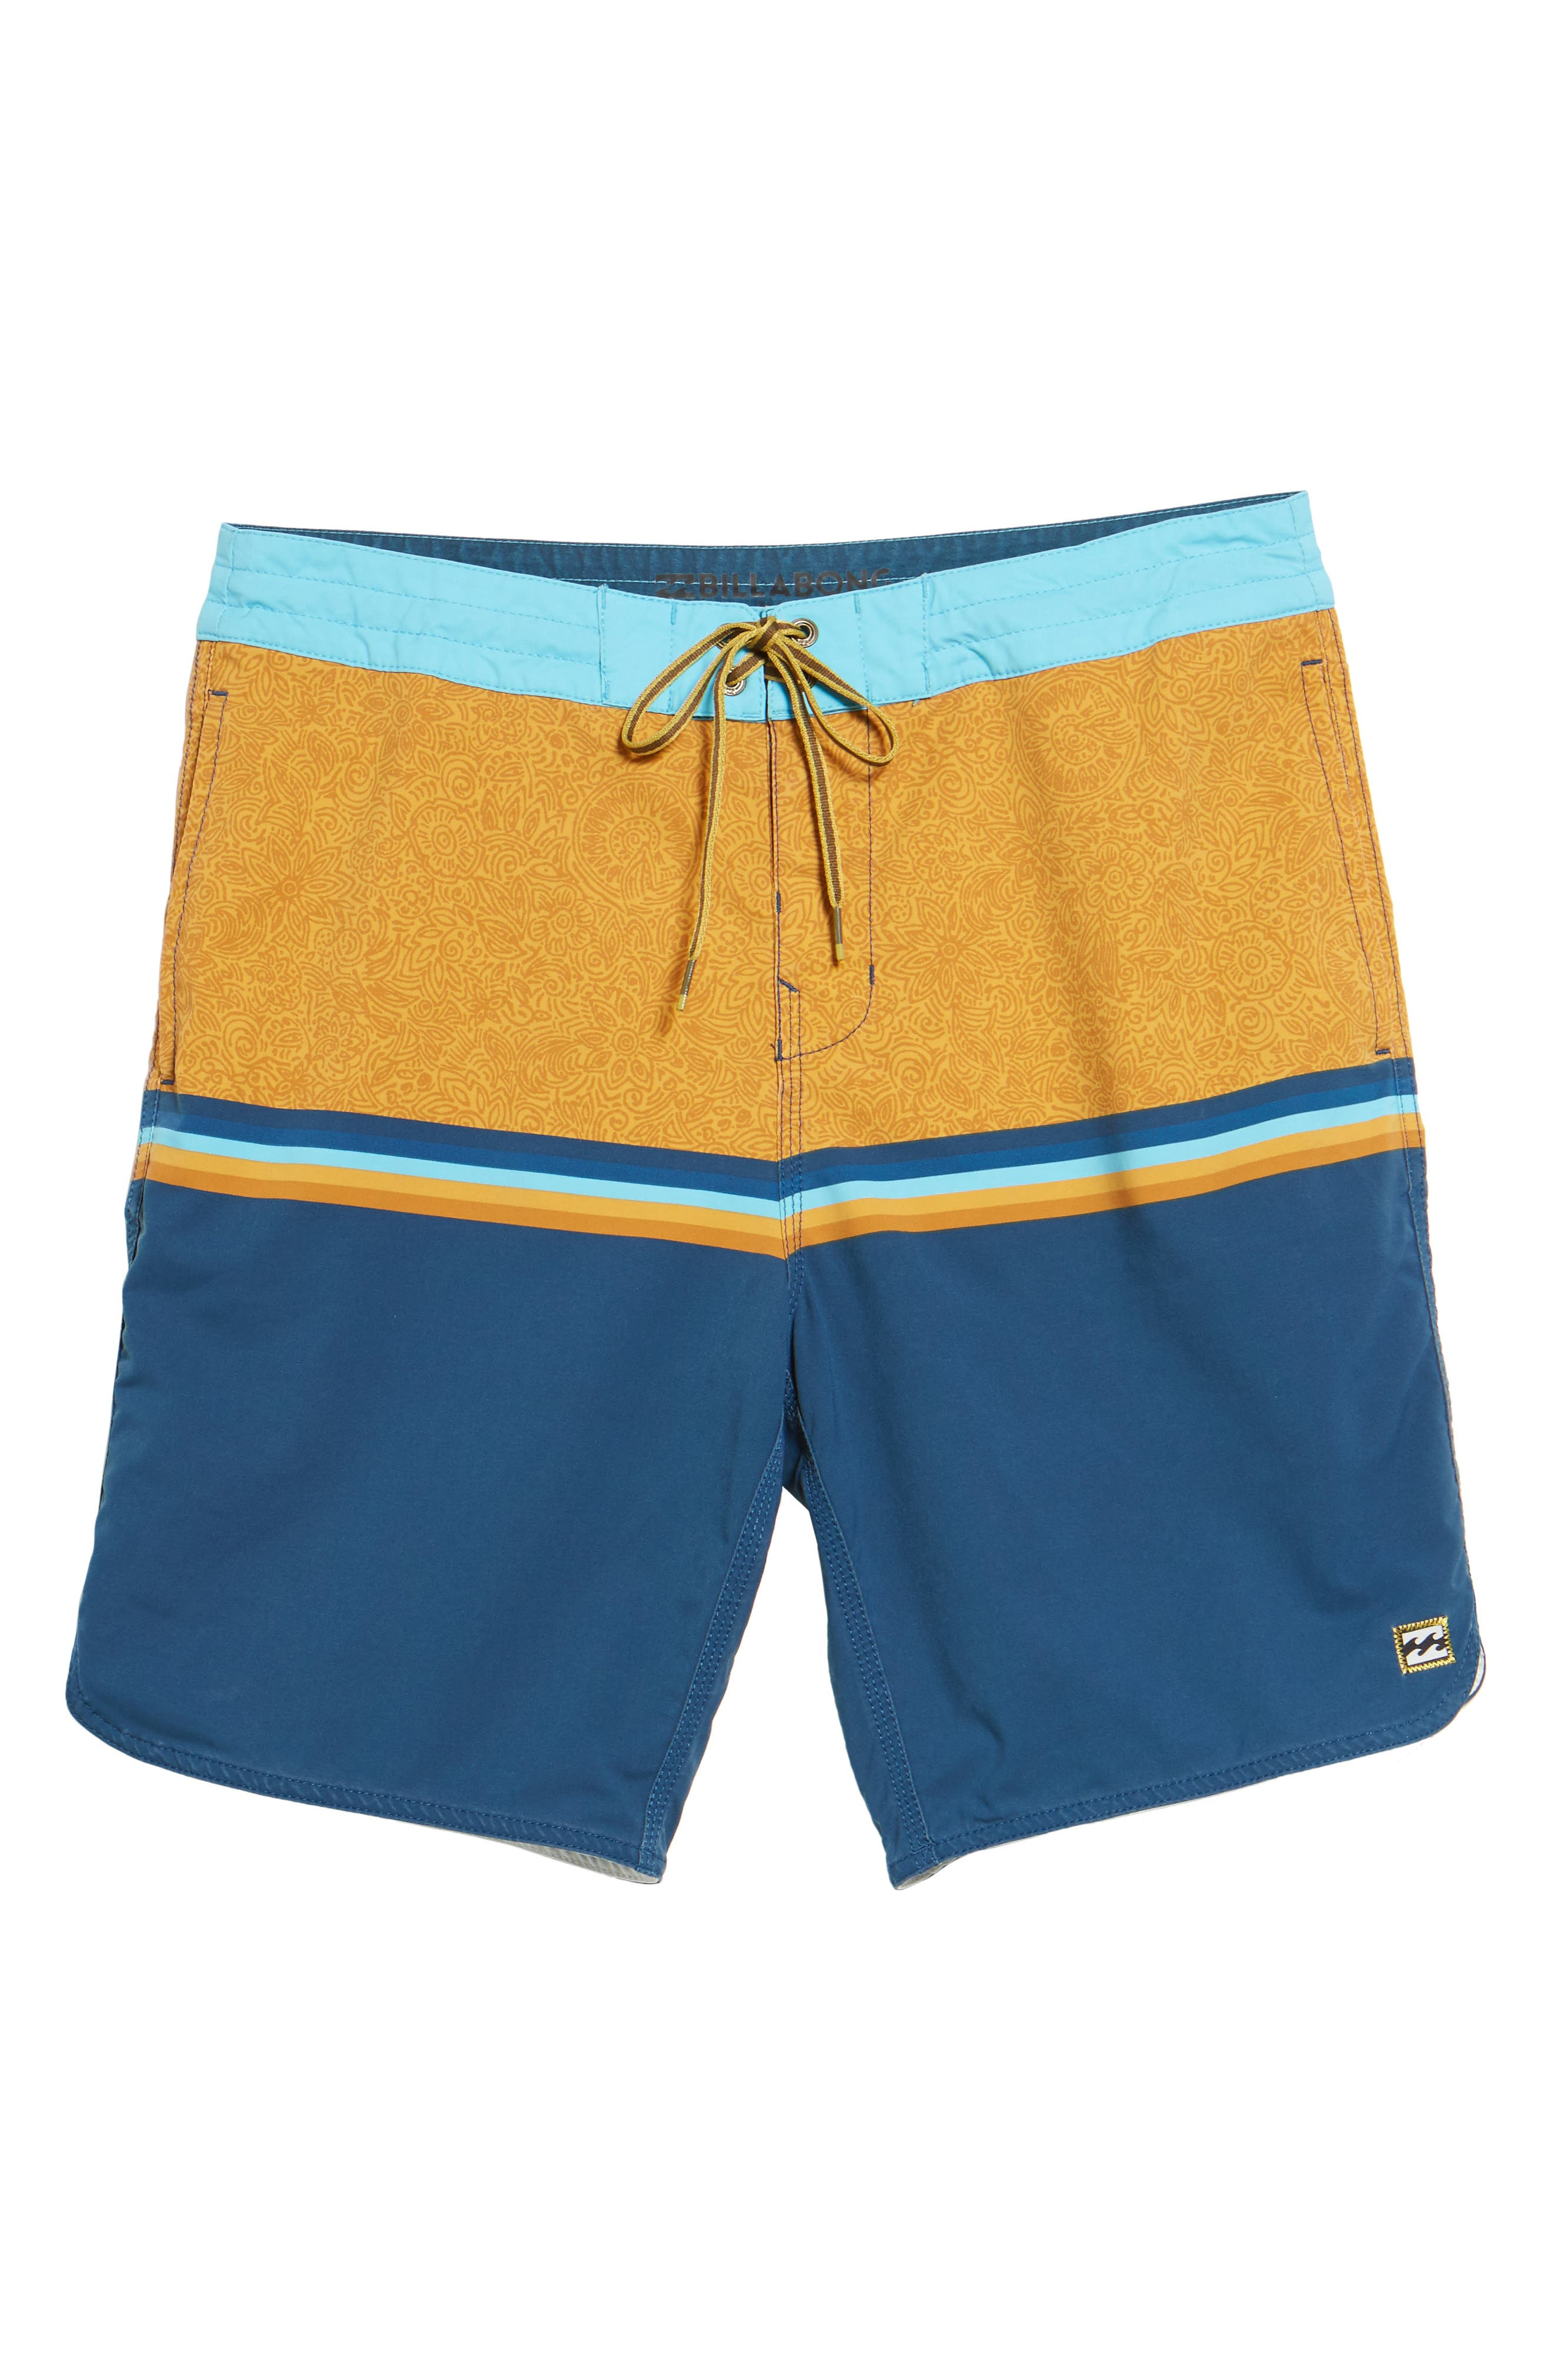 Fifty50 Low Tide Swim Trunks,                             Alternate thumbnail 29, color,